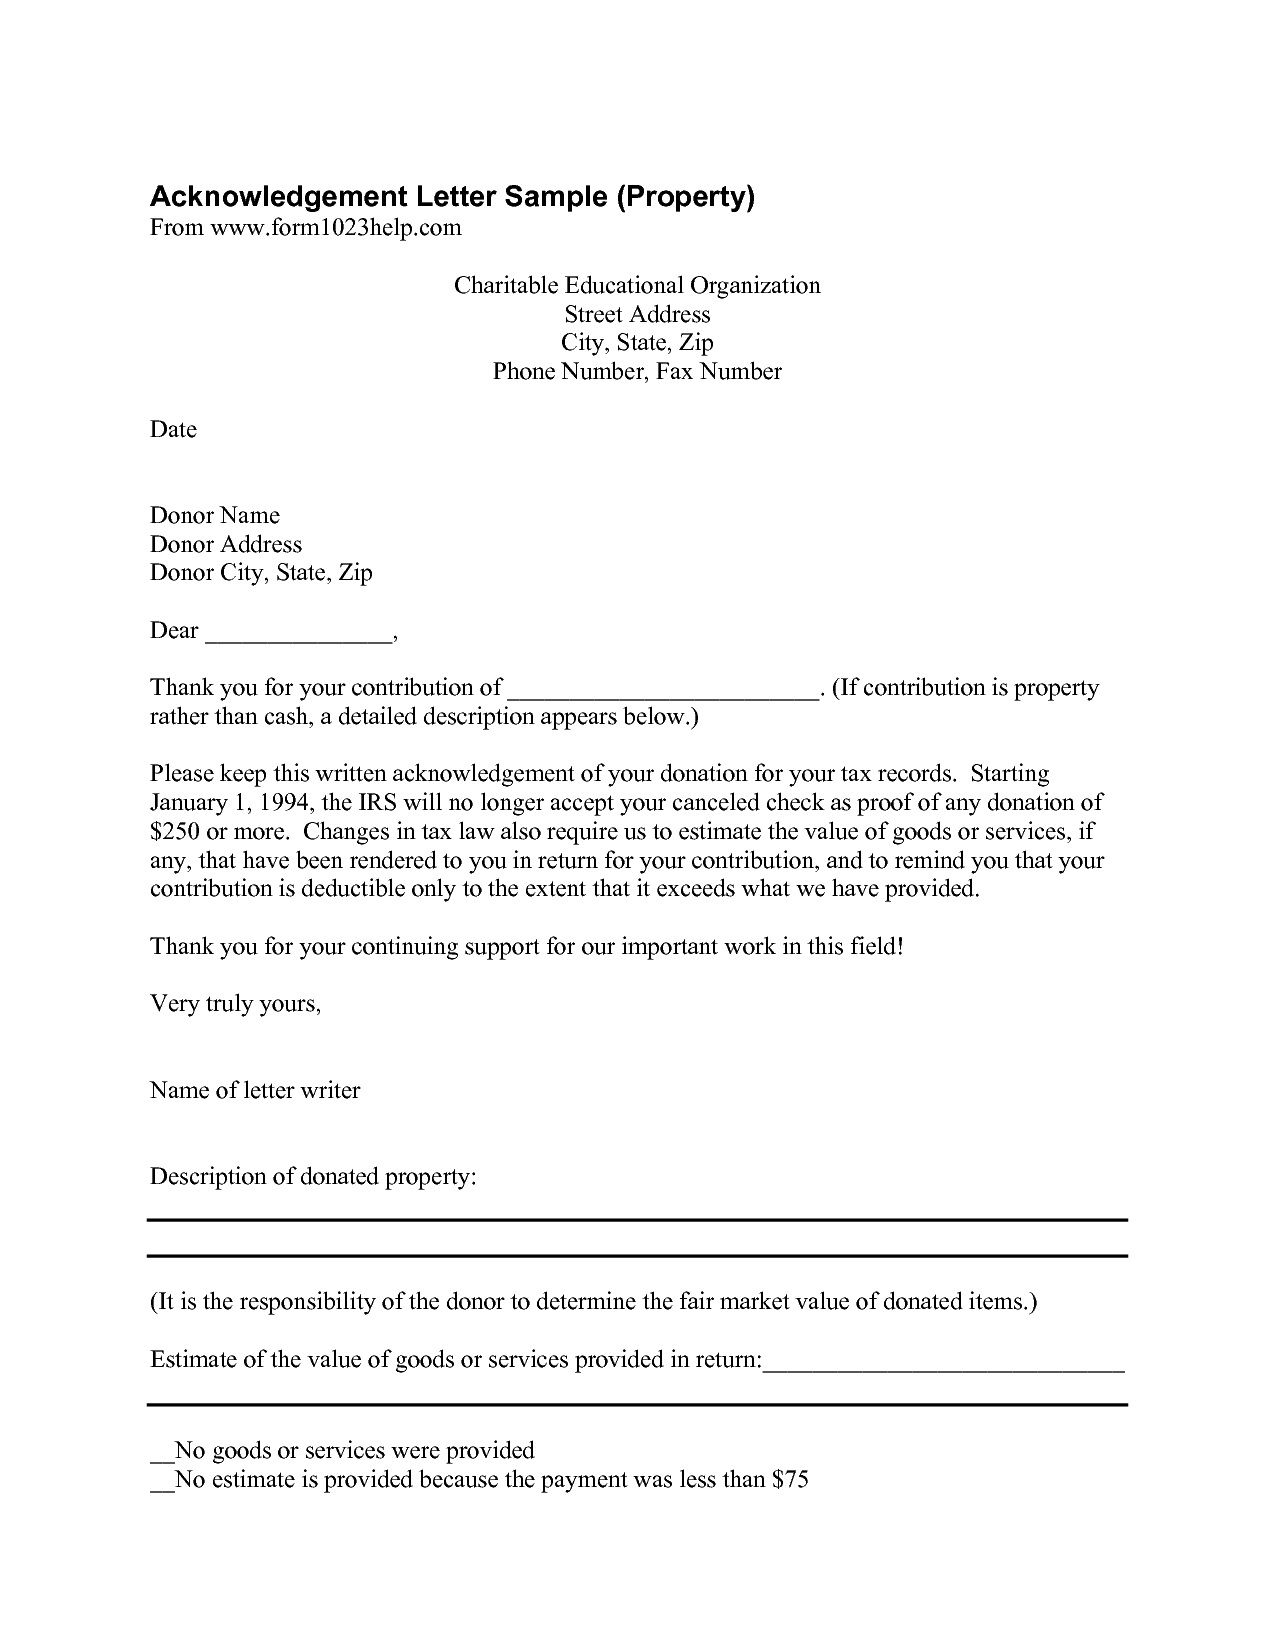 001 Wonderful Fund Raising Letter Template Photo  Templates Example Of Fundraising Appeal For Mission Trip UkFull